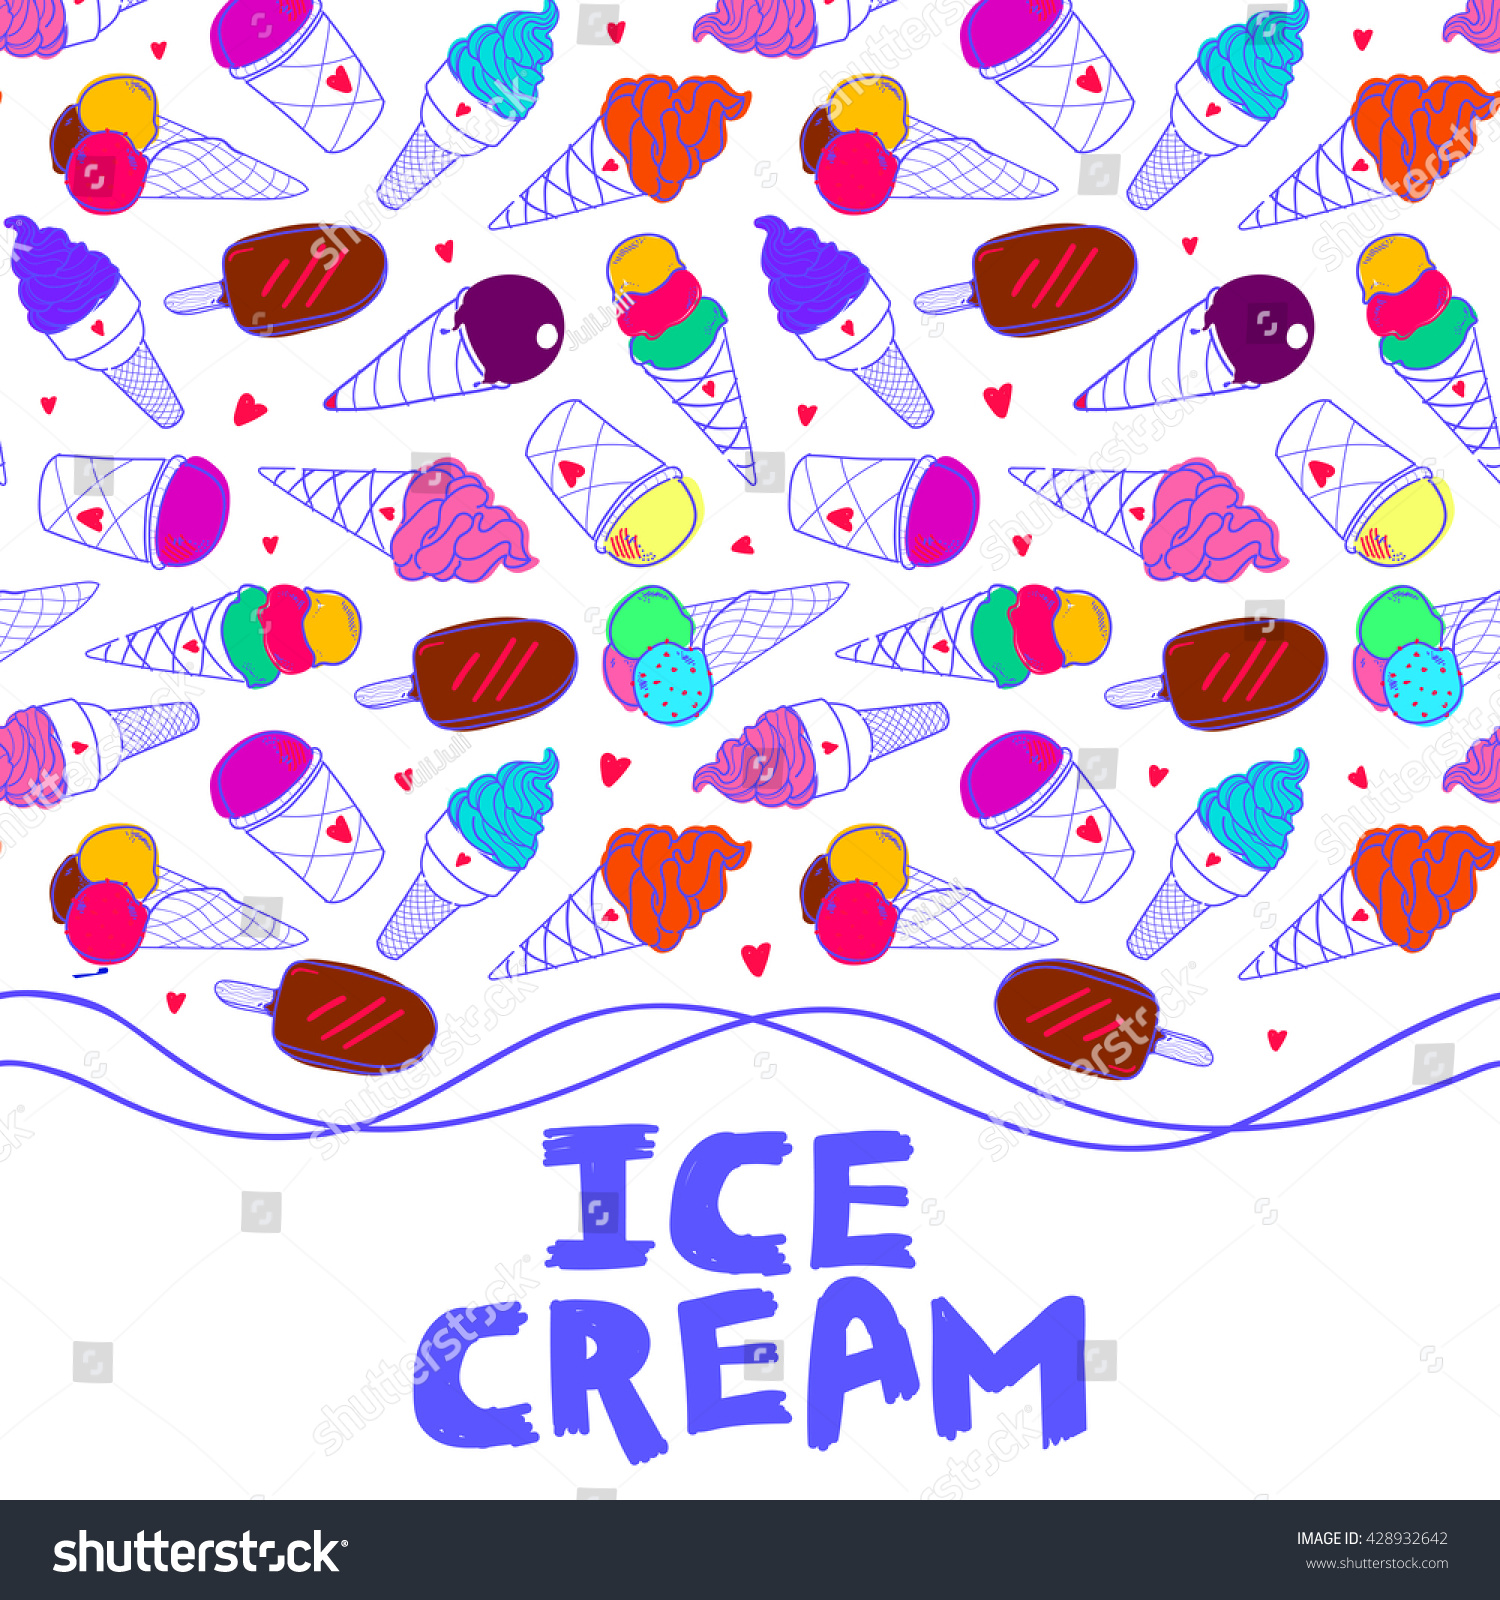 Sweet Ice Cream Flat Colorful Seamless Pattern Vector: Seamless Horizontal Border Colorful Ice Cream Stock Vector